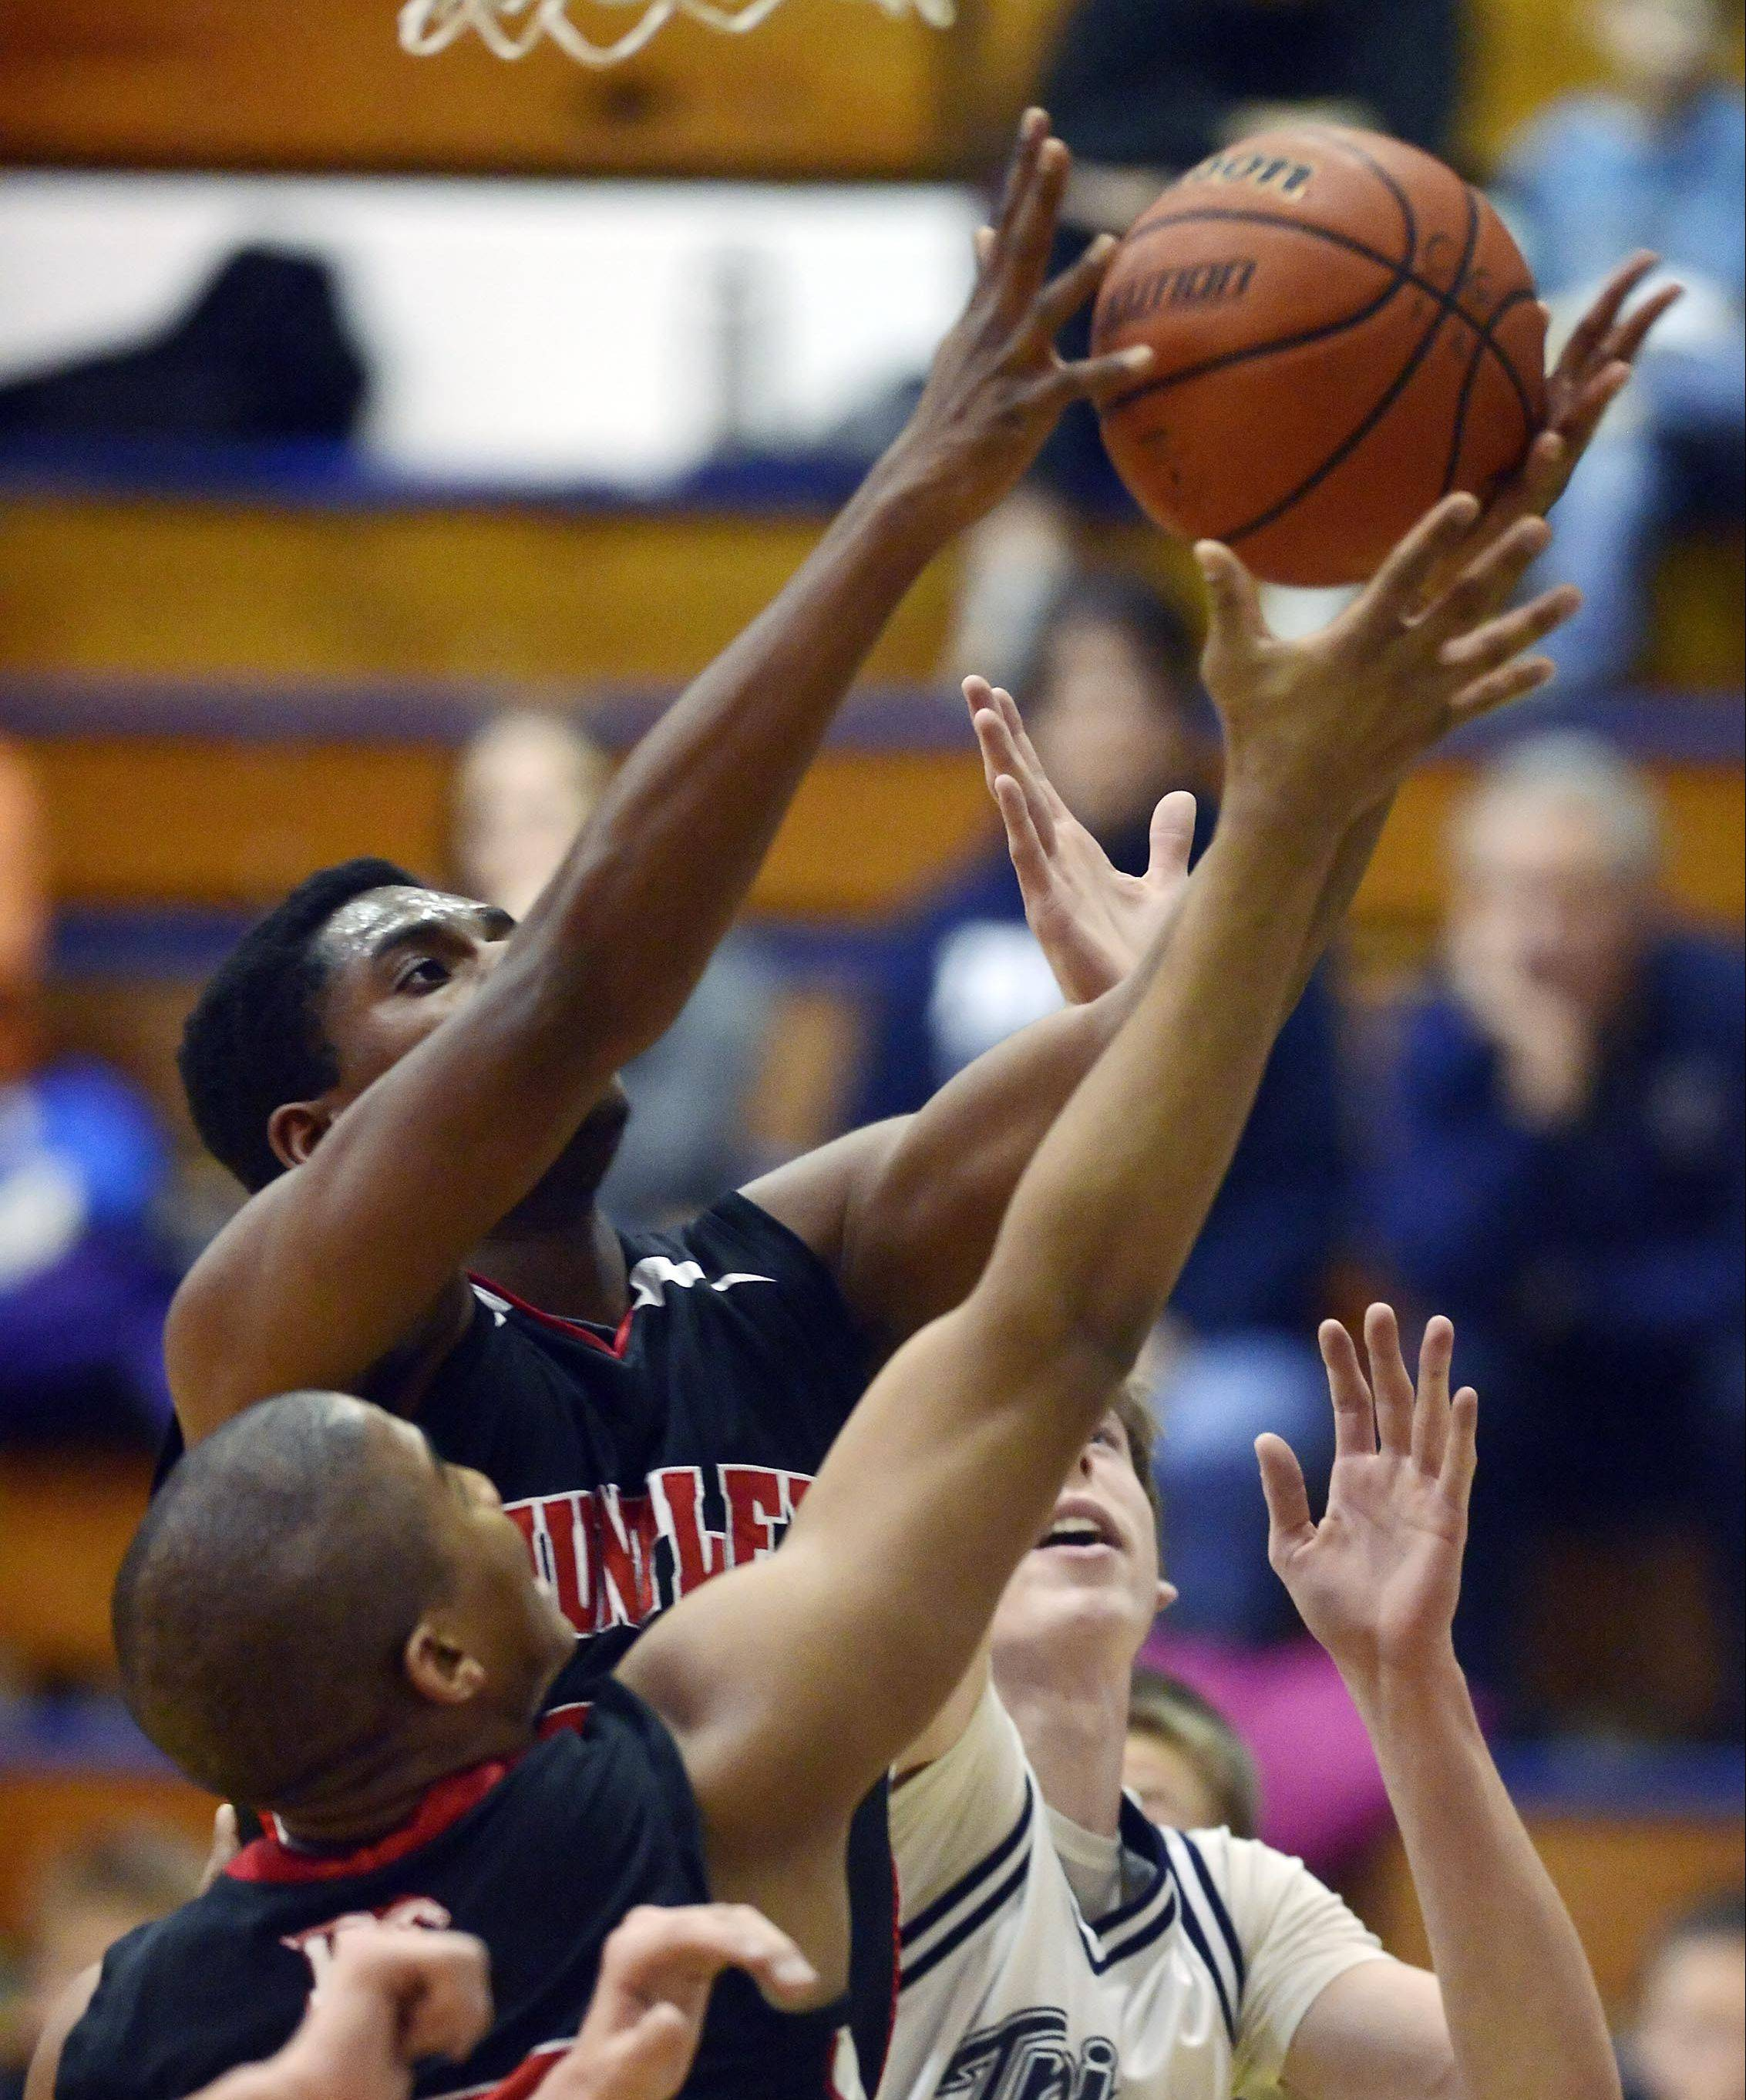 Huntley's Amanze Egekeze rises up for a rebound next to teammate Bryce Only and Cary-Grove's Dean Lee last season at Cary-Grove. Egekeze has committed to a collegiate future at Belmont University in Nashville, Tenn.